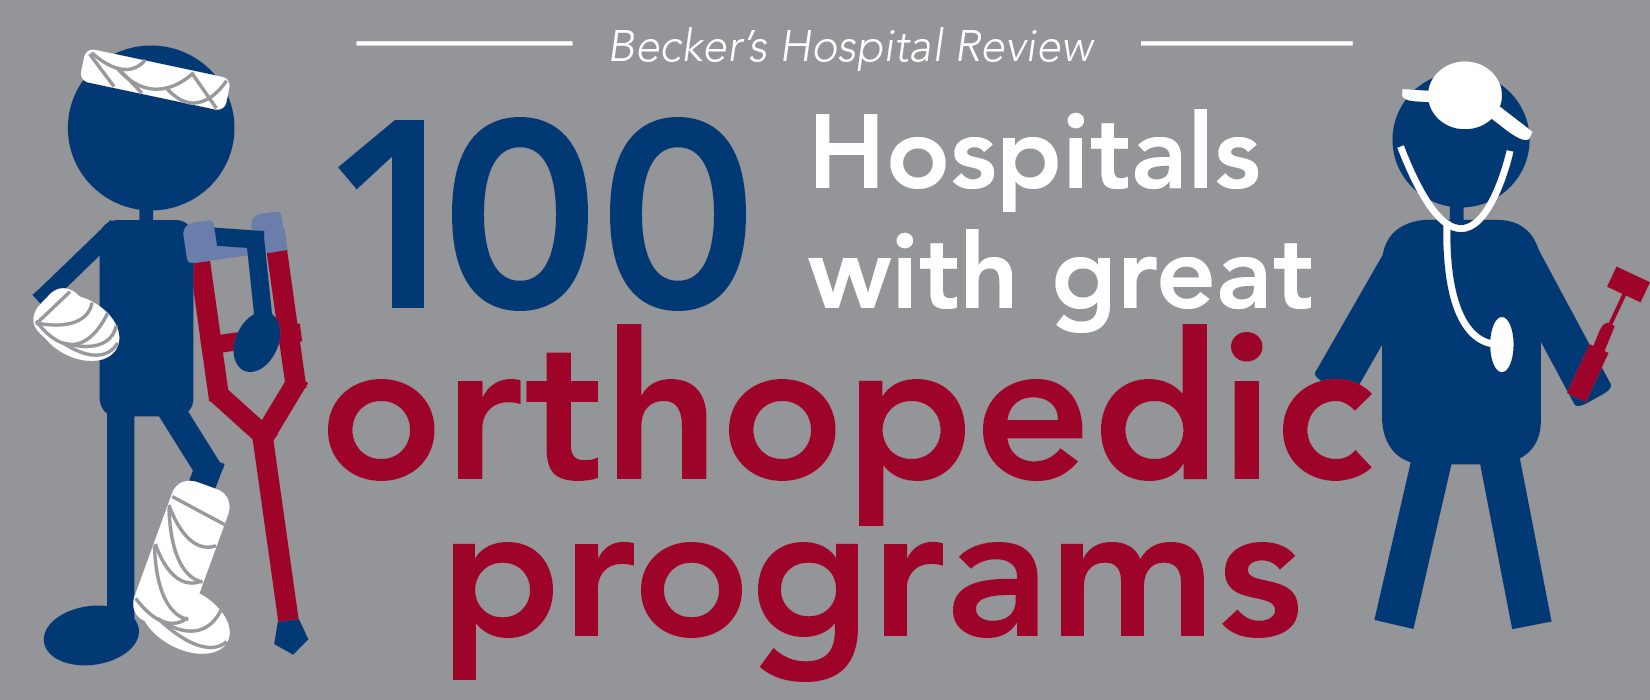 100 hospitals with great orthopedic programs | 2016